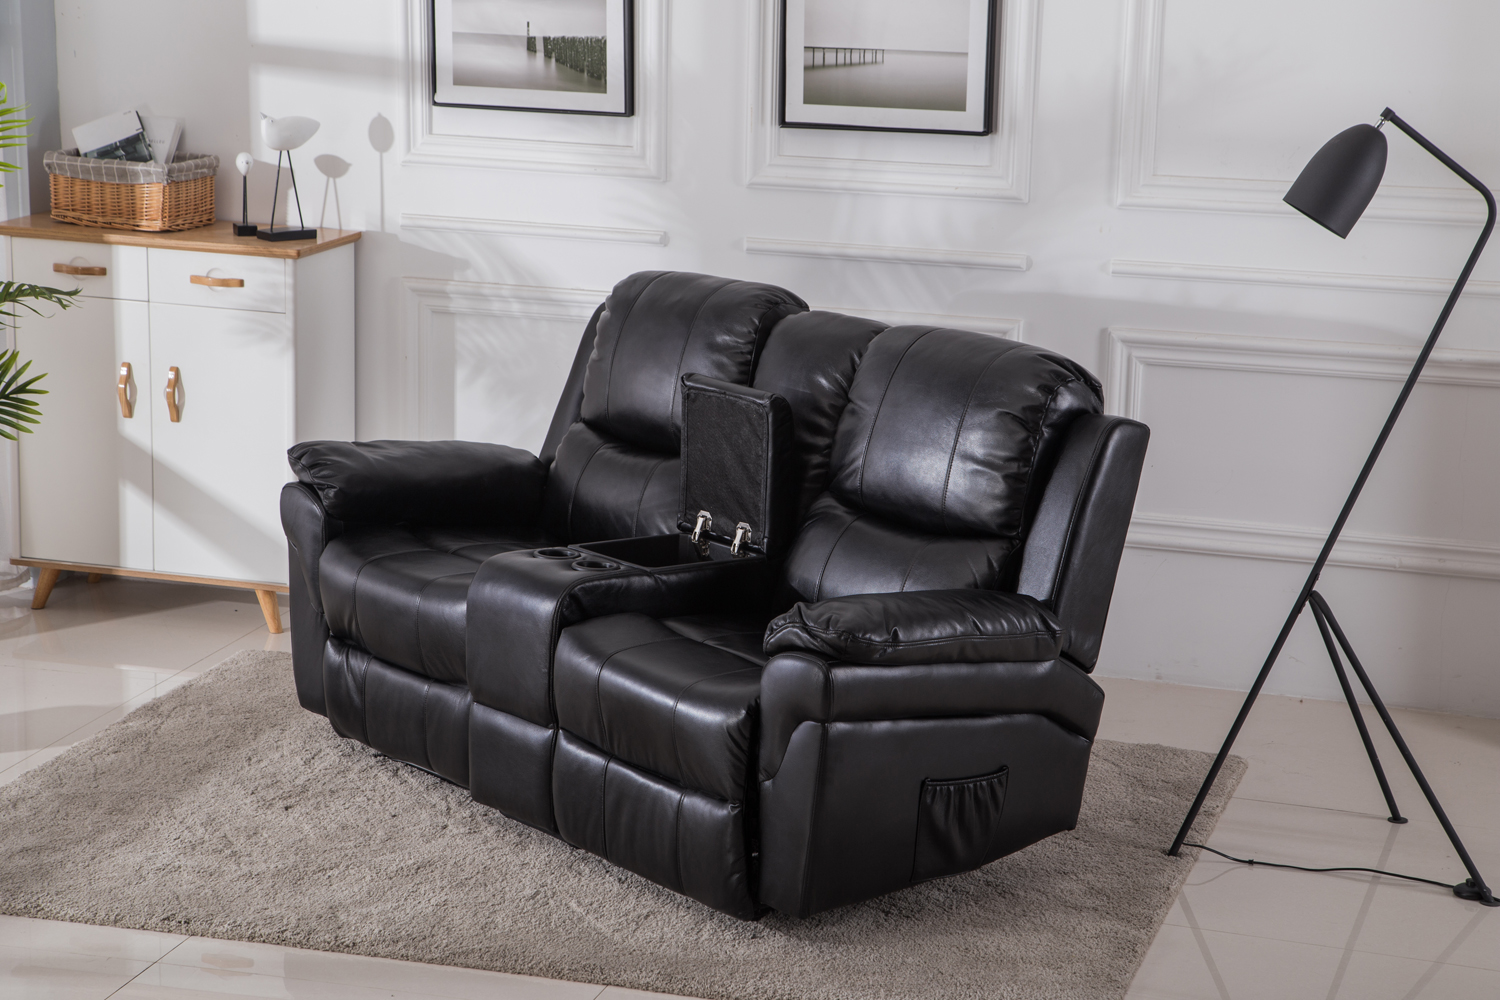 mcombo kinosessel fernsehsessel relaxsessel 2 sitzer heimkino cinema sessel sofa ebay. Black Bedroom Furniture Sets. Home Design Ideas